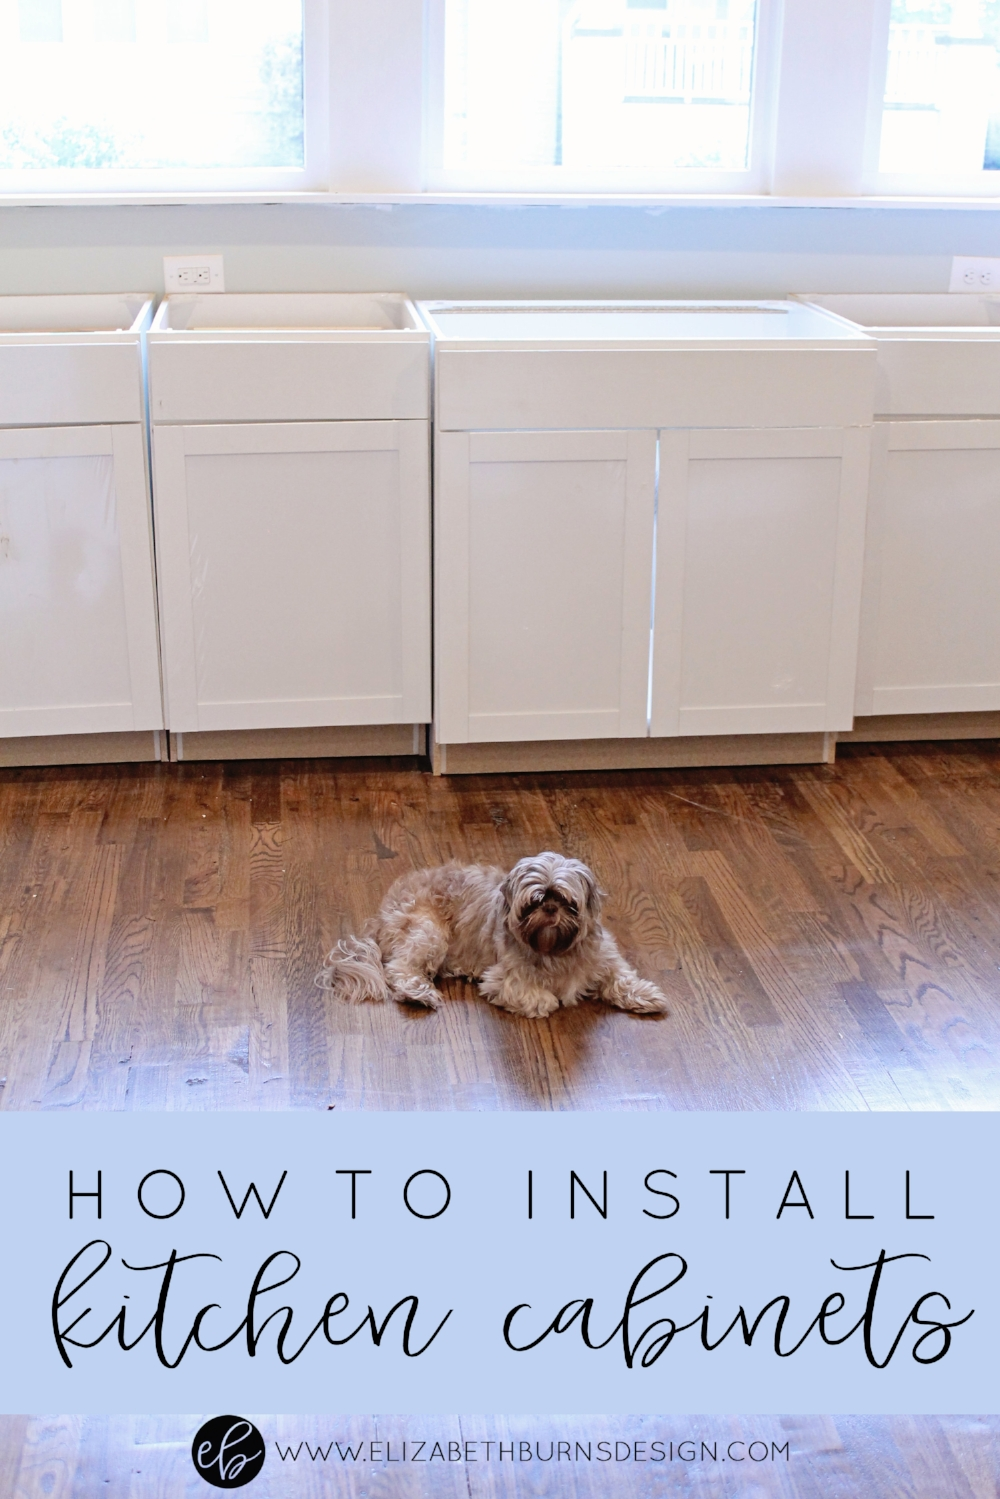 how to install kitchen cabinets install kitchen cabinets Installing Kitchen Cabinets main